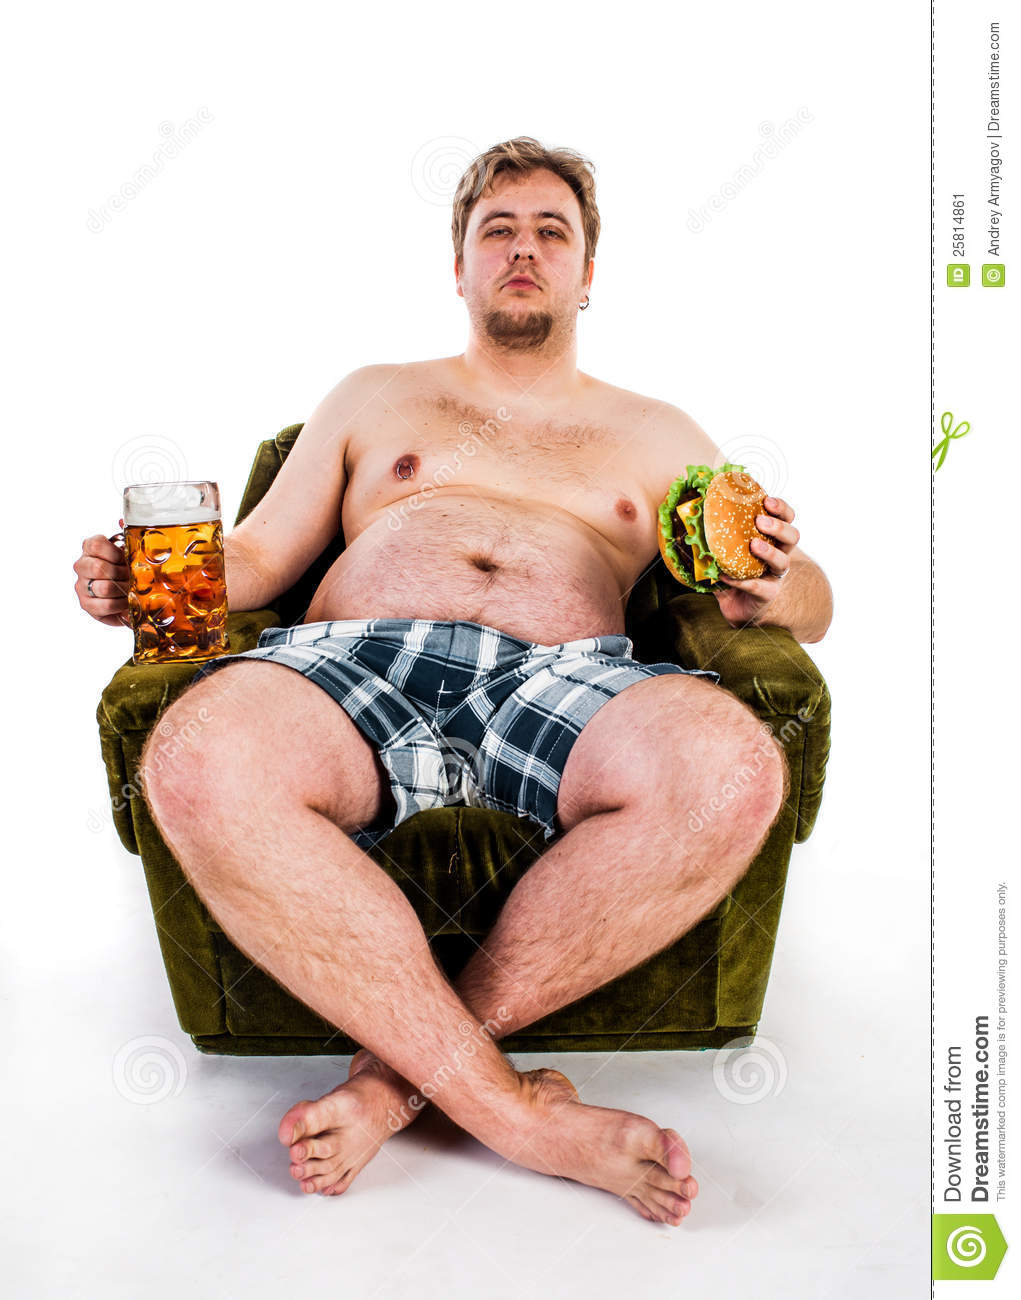 Fat Man Eating Hamburger Stock Image - Image: 25814861